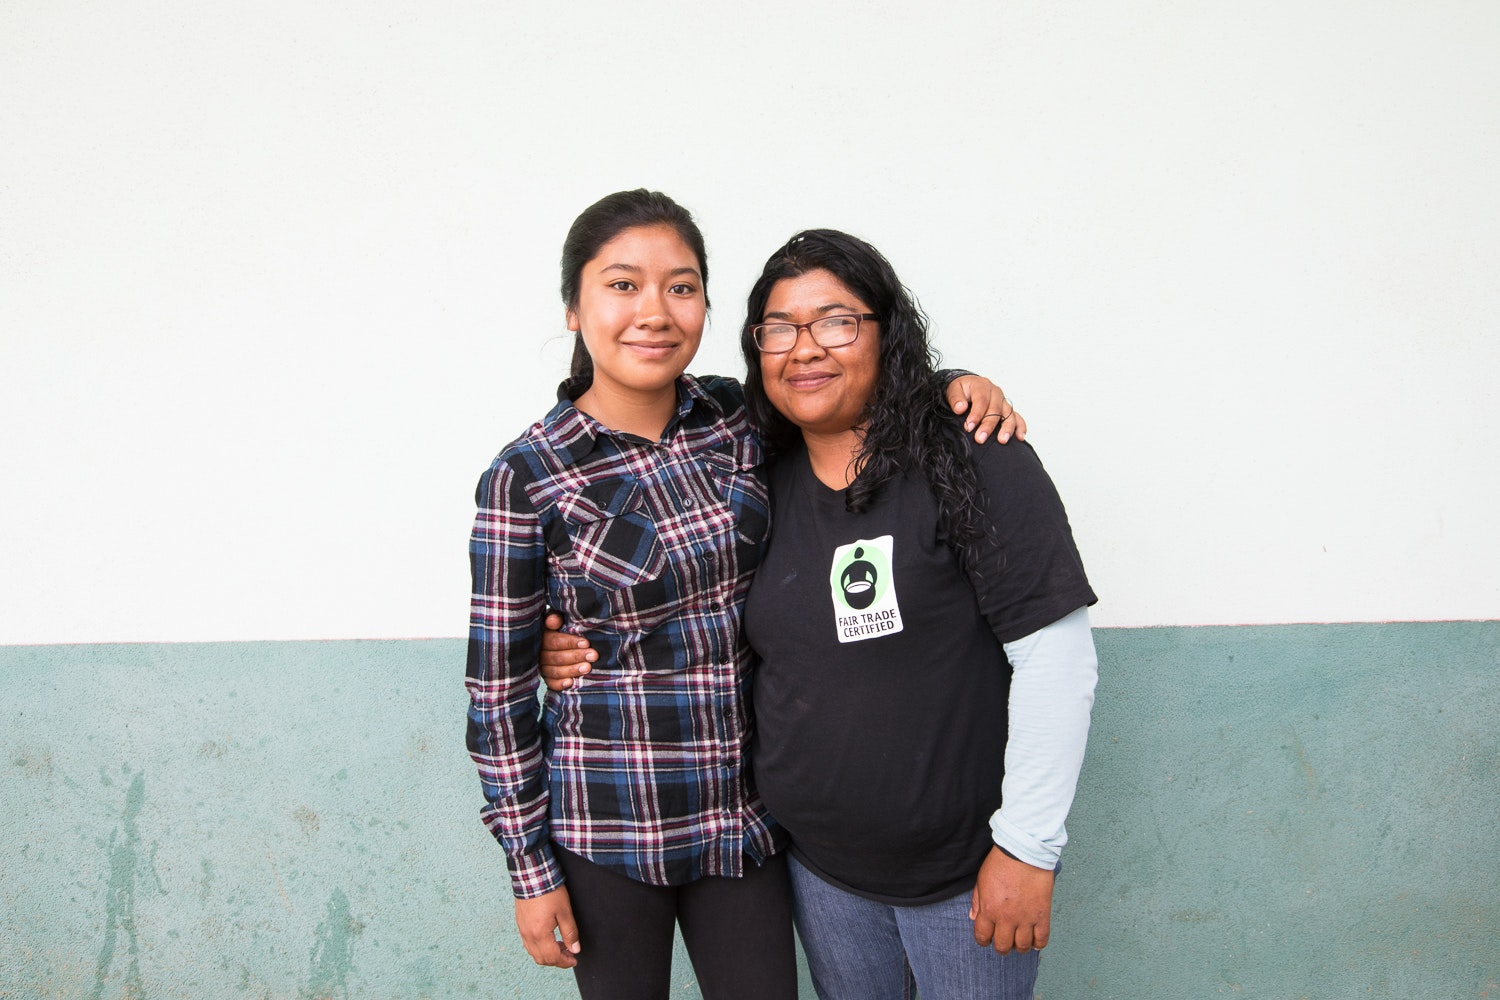 Saidel Hernandez and her daughter